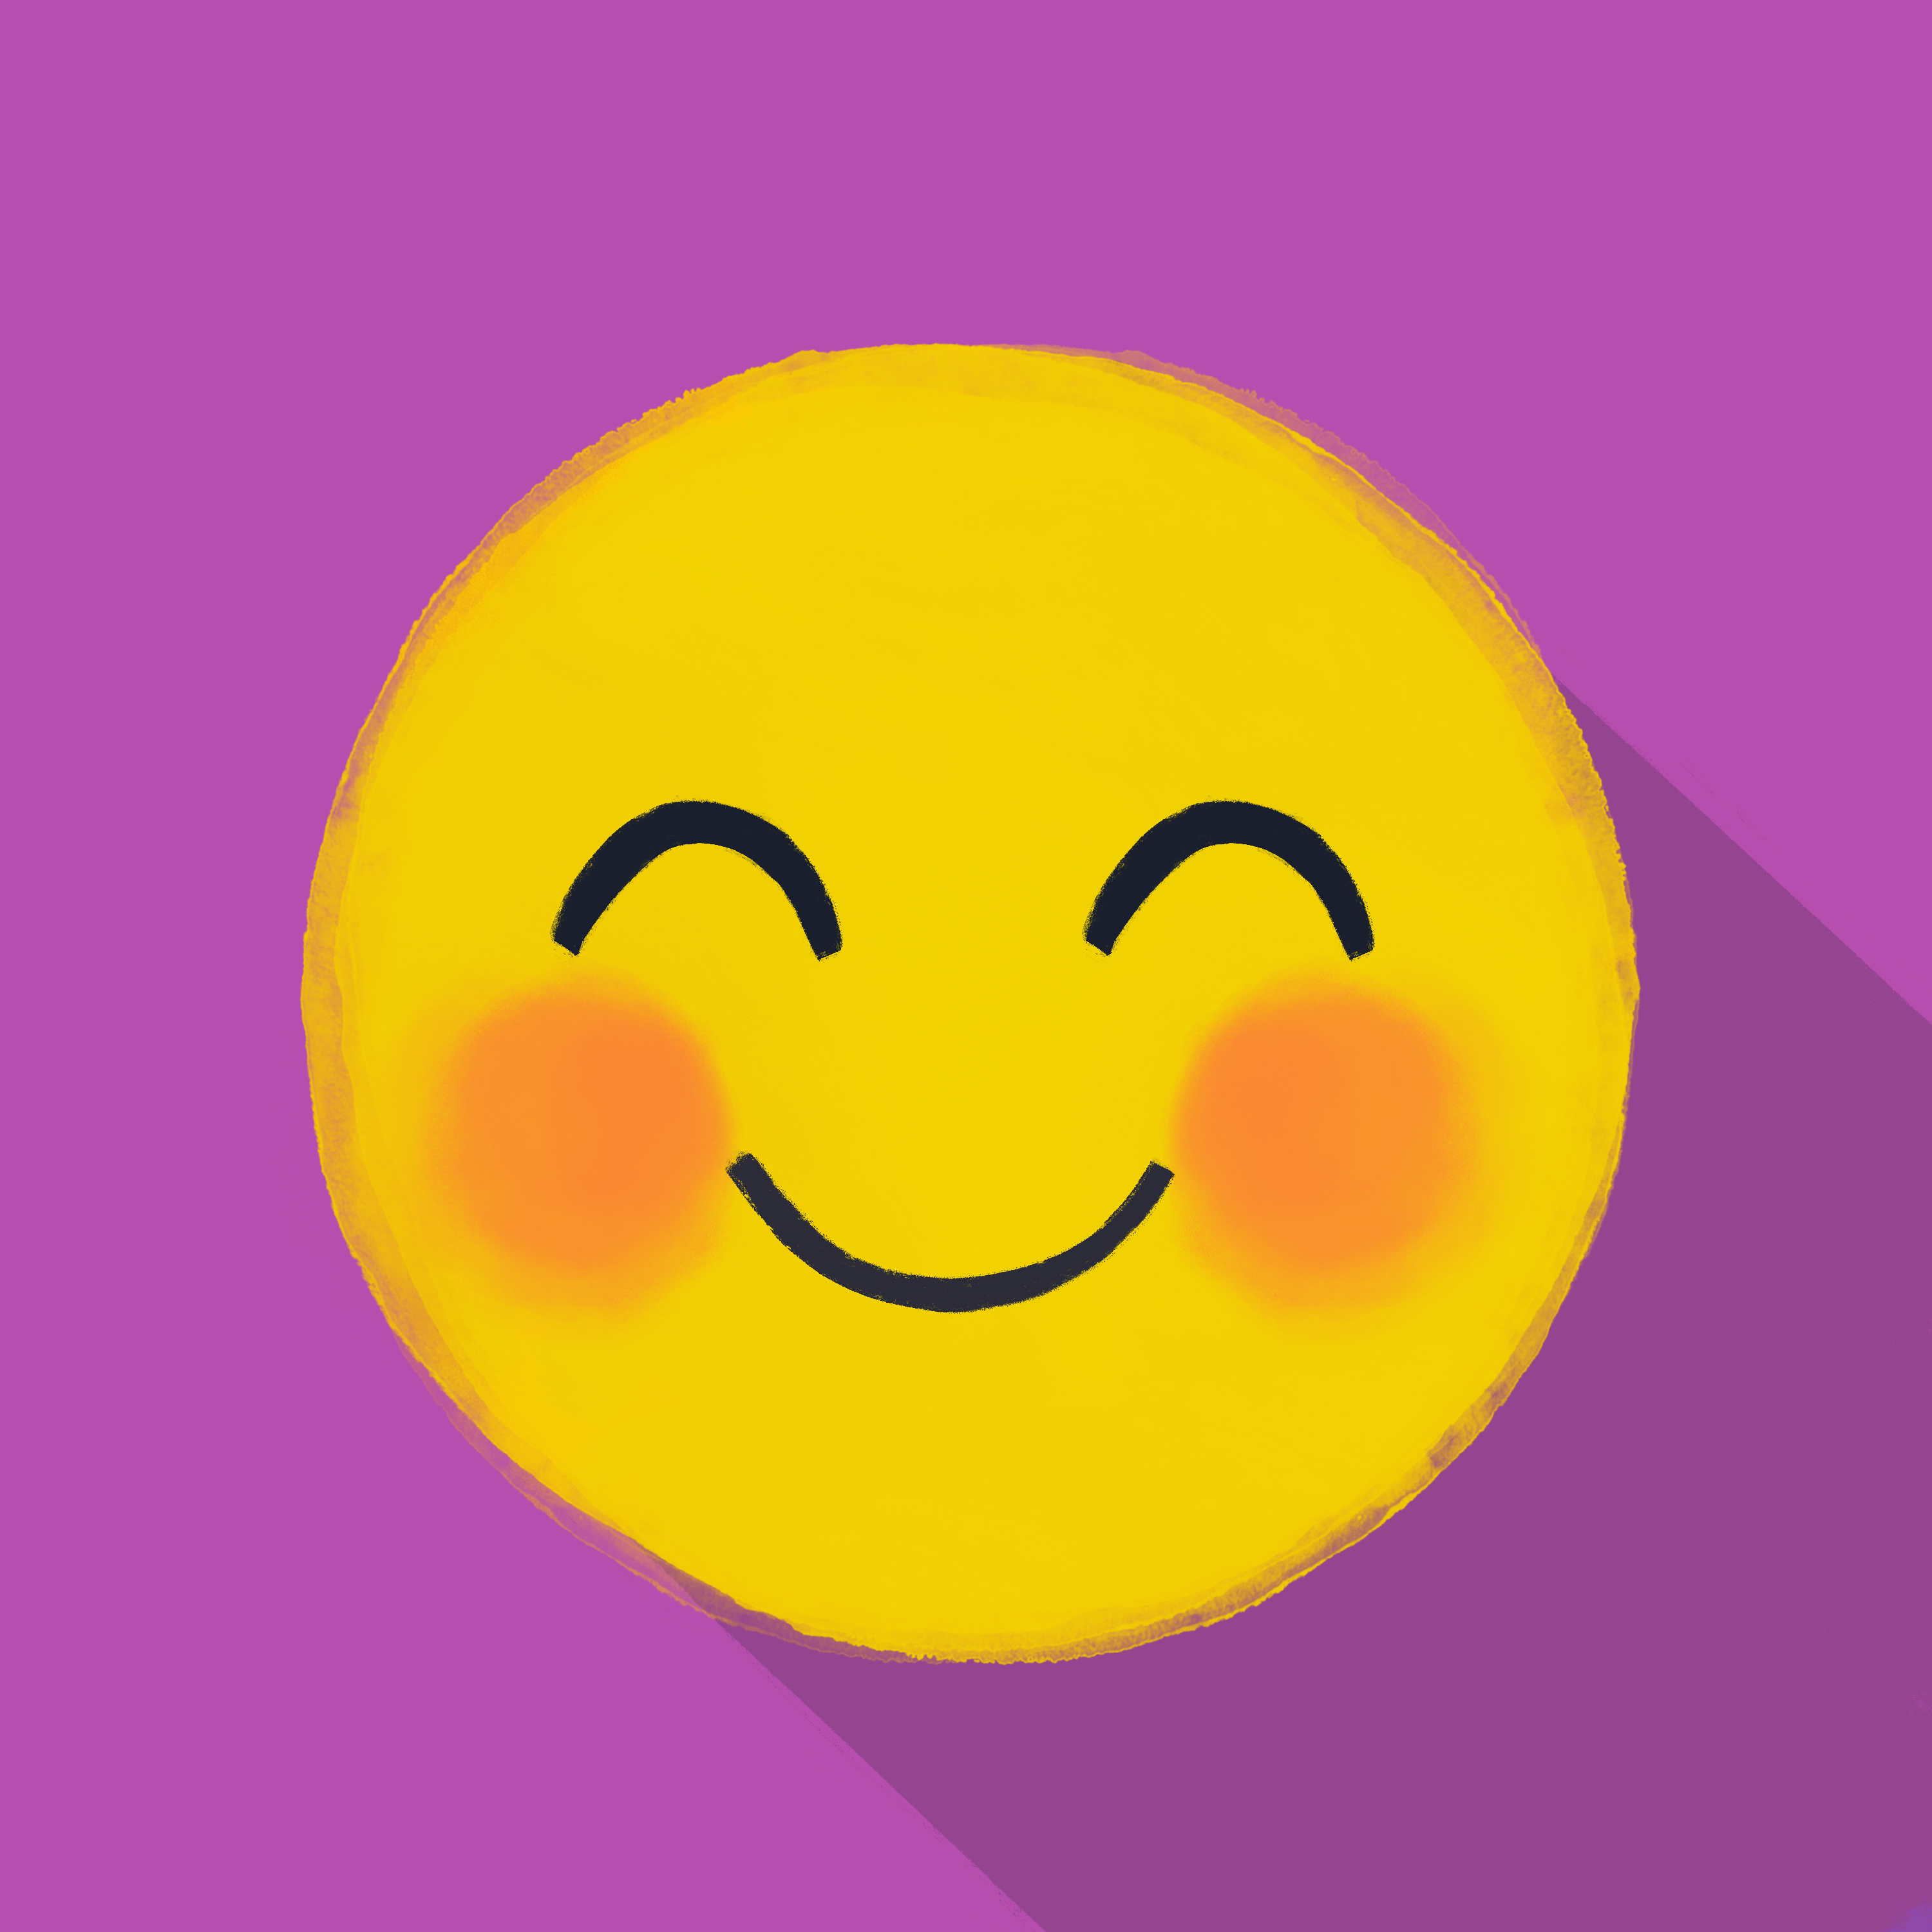 1-Emoji-Reimagined-Smiling_Face_With_Smiling_Eyes-Kiwani-Dolean